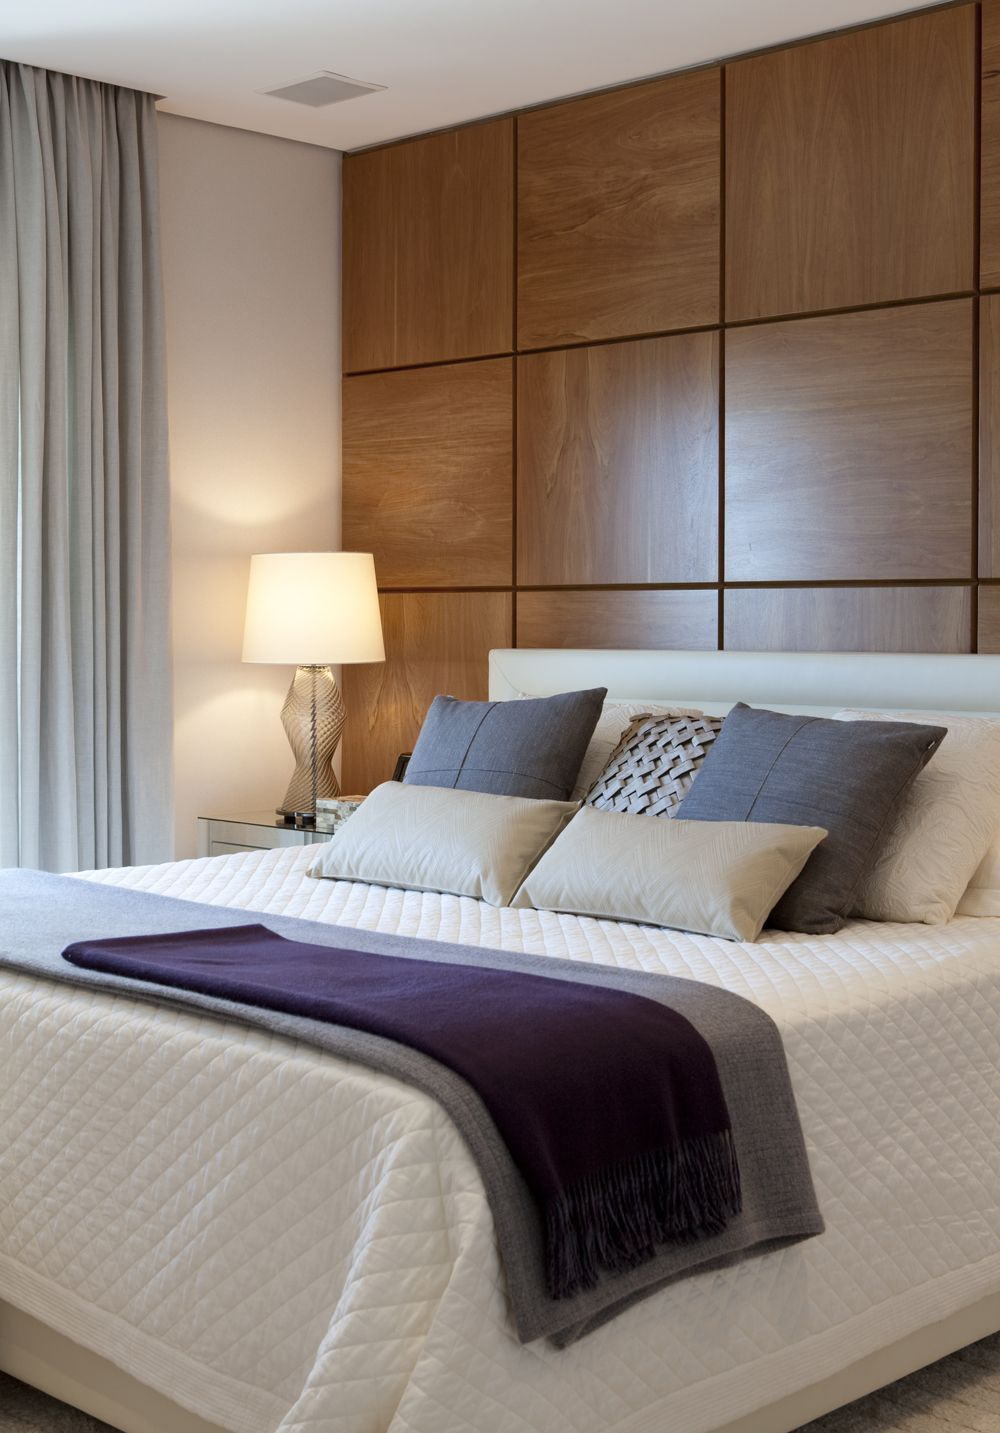 Elegant bedroom interior design elegant bedroom  you can find many types of wallpapers in wood and